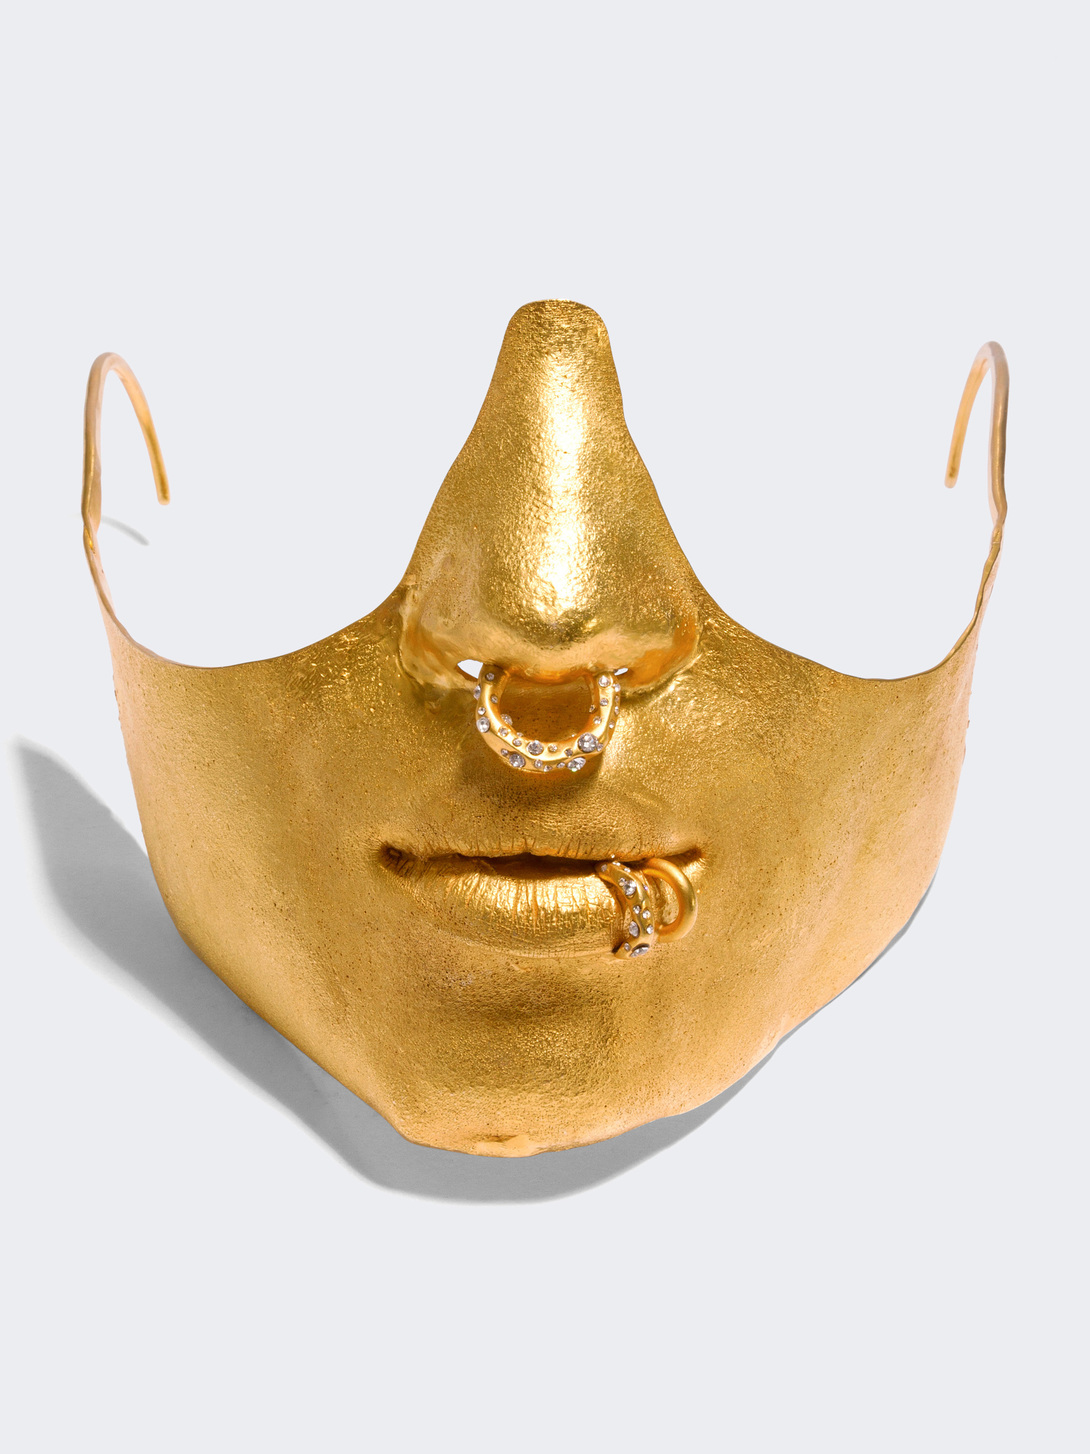 LOWER FACE MASK, Elsa Schiaparelli